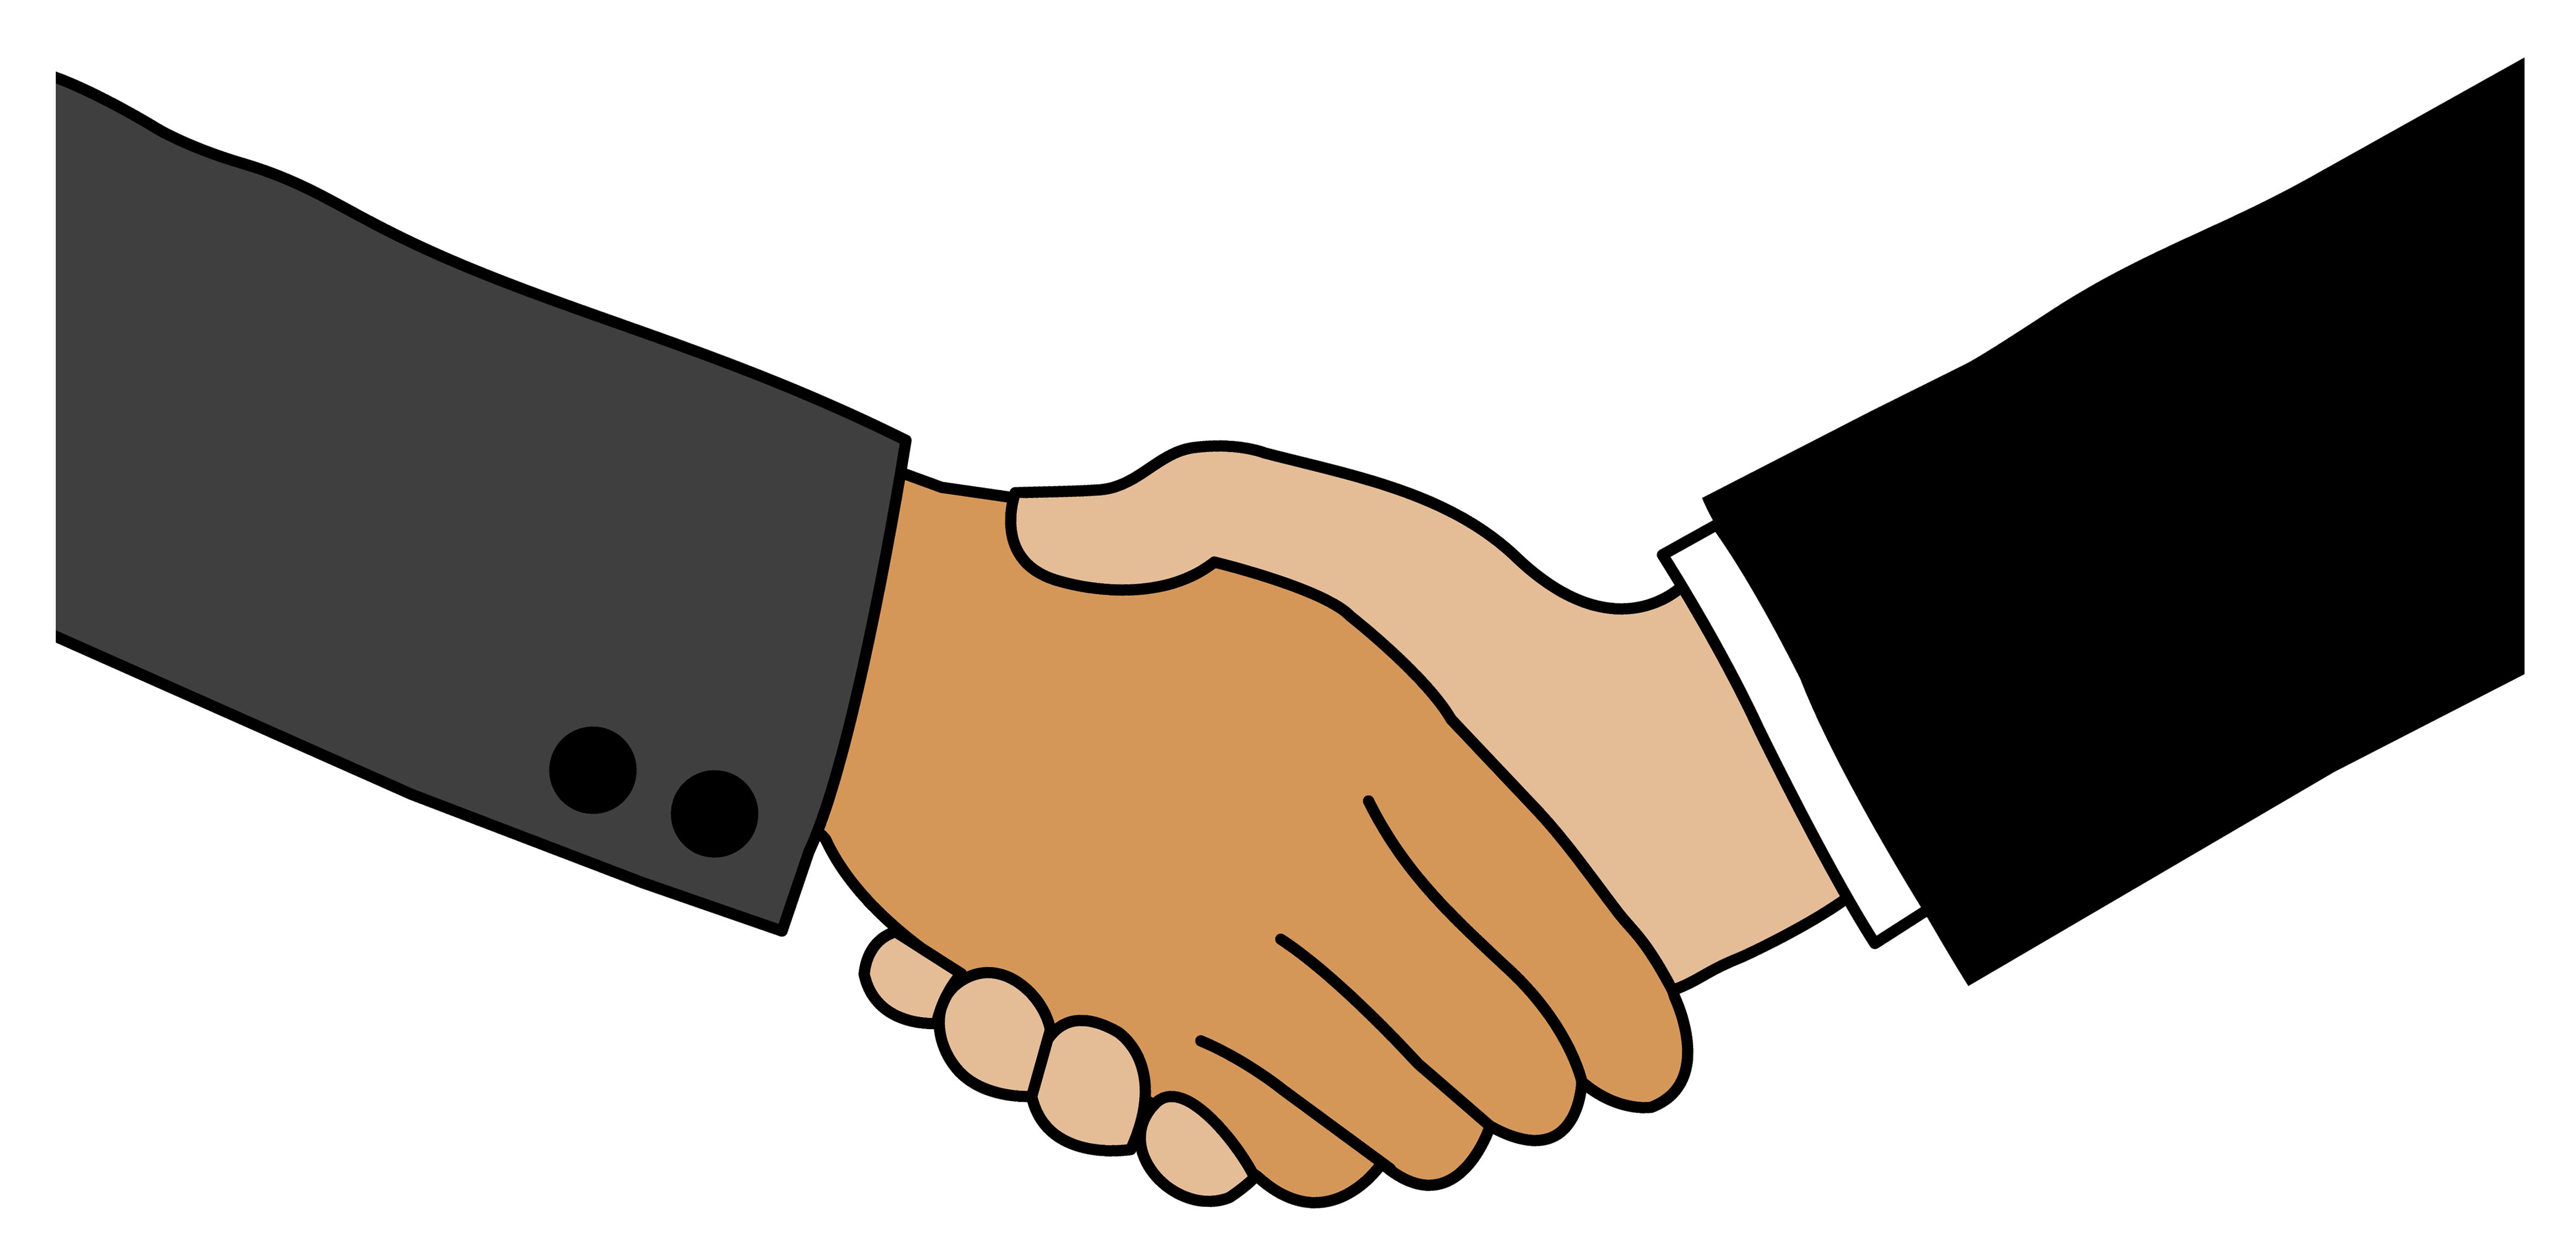 Shaking Hands Drawing Clipart Best. Busi-Shaking Hands Drawing Clipart Best. Business People Clipart Clipart Panda Free Clipart Images-17